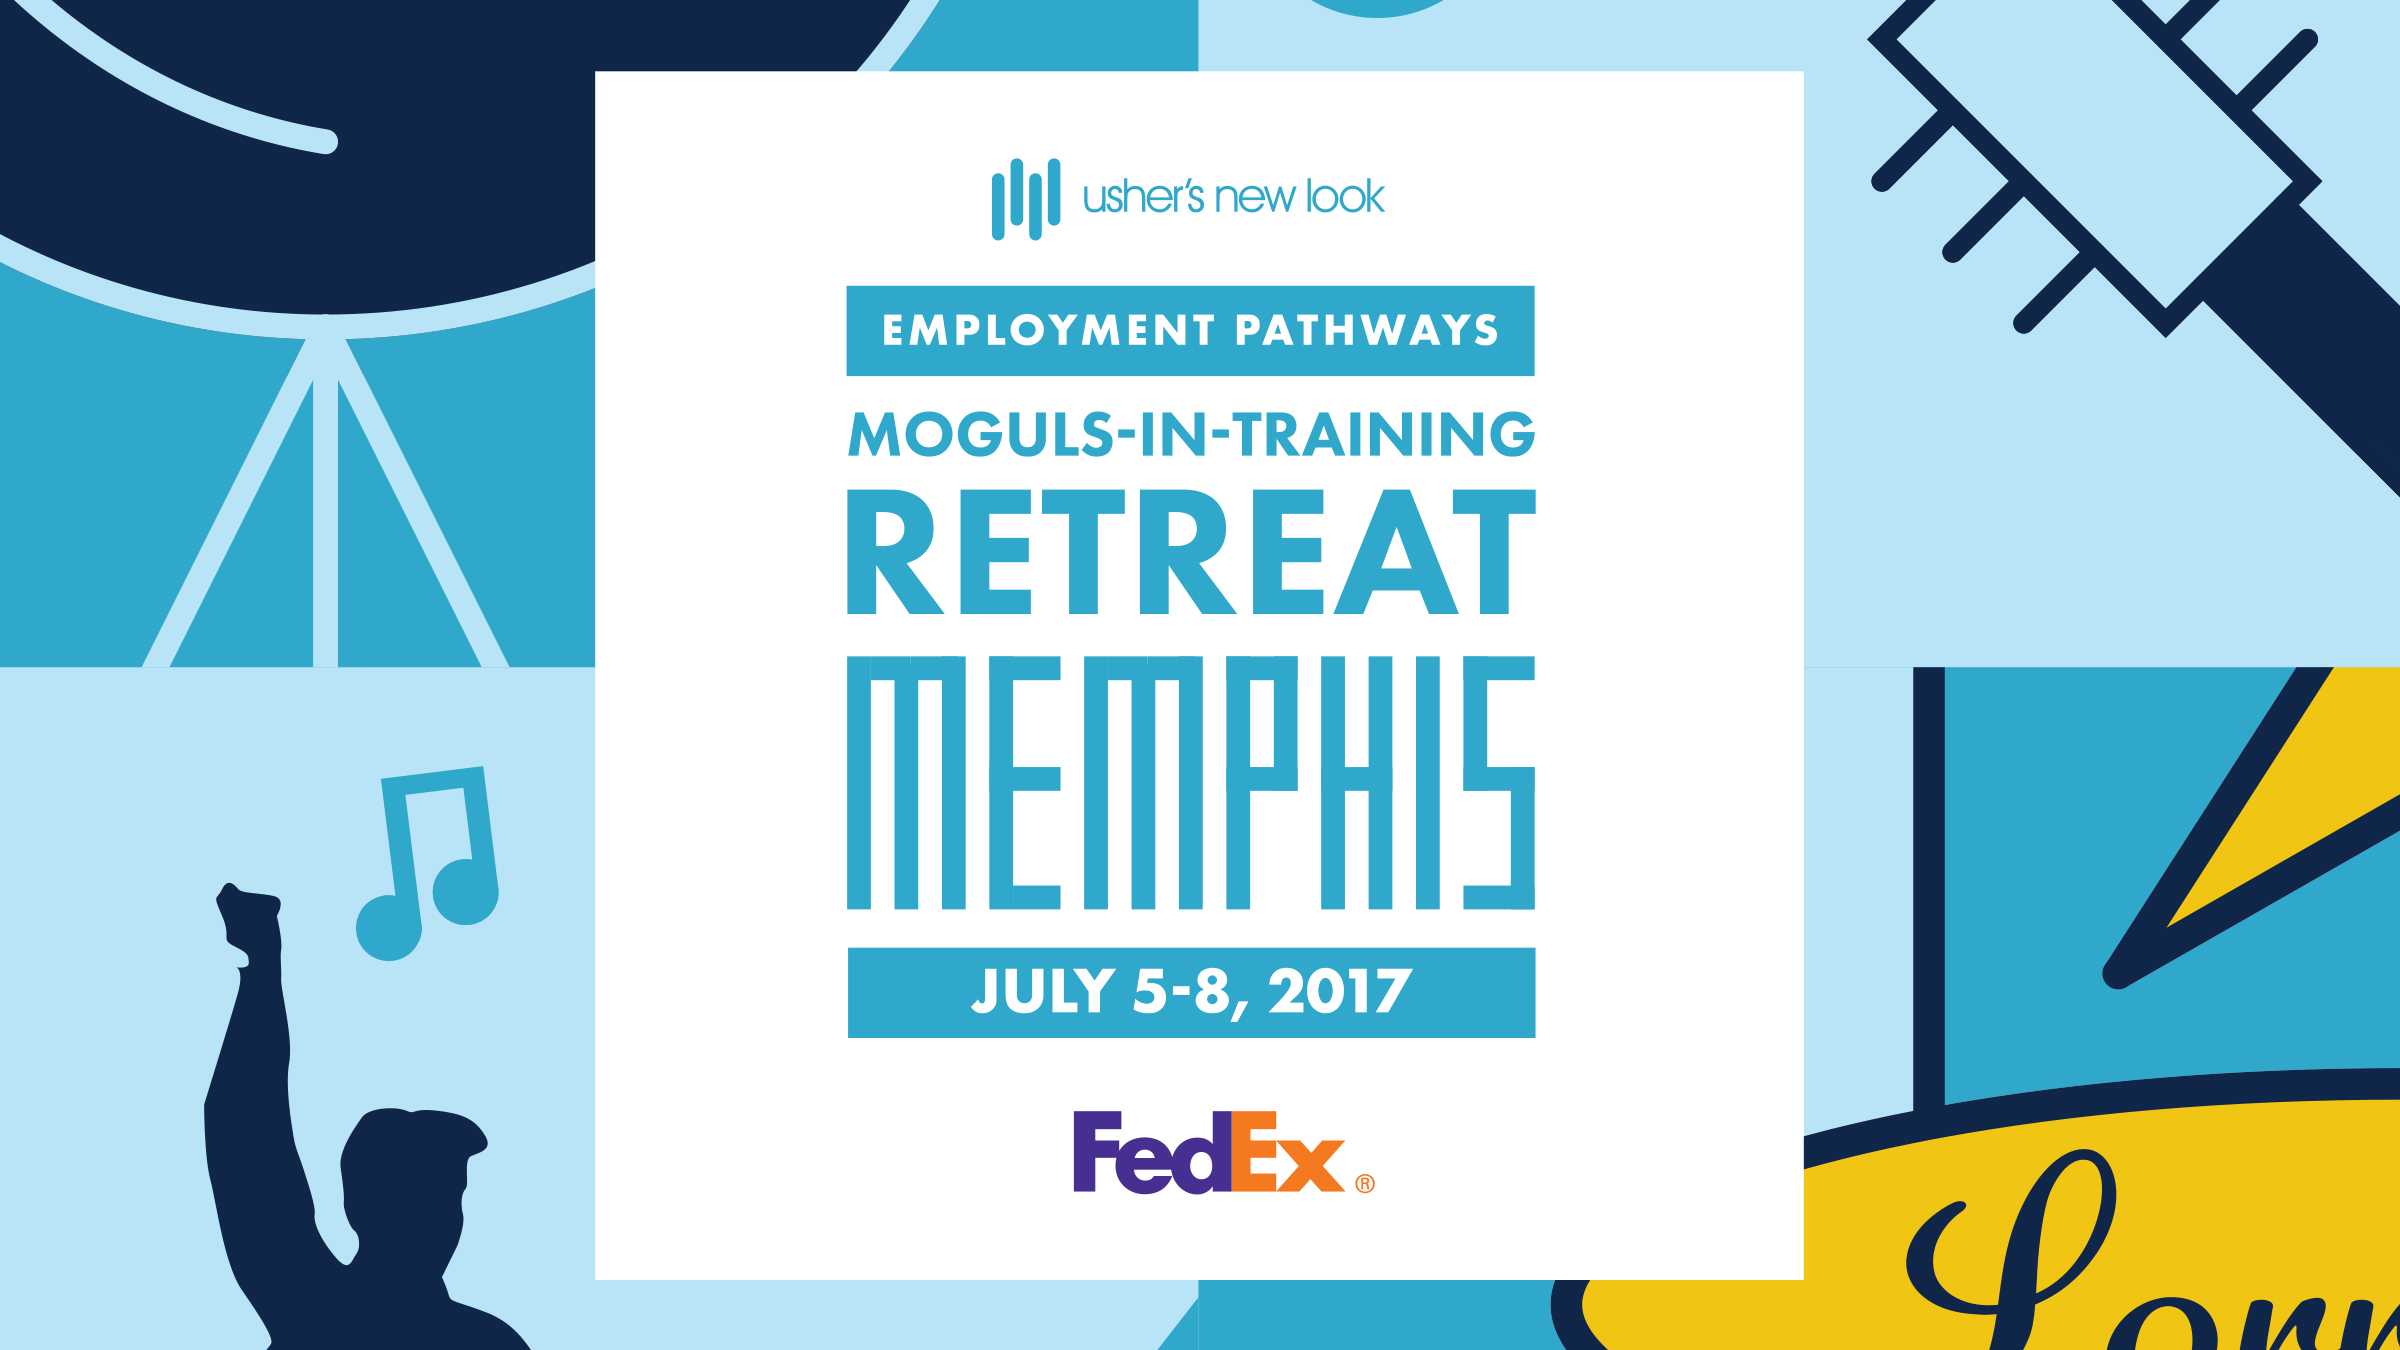 FedEx + MIT Retreat - Created identity with signage and shirt designs that reflected the culture and history of Memphis.